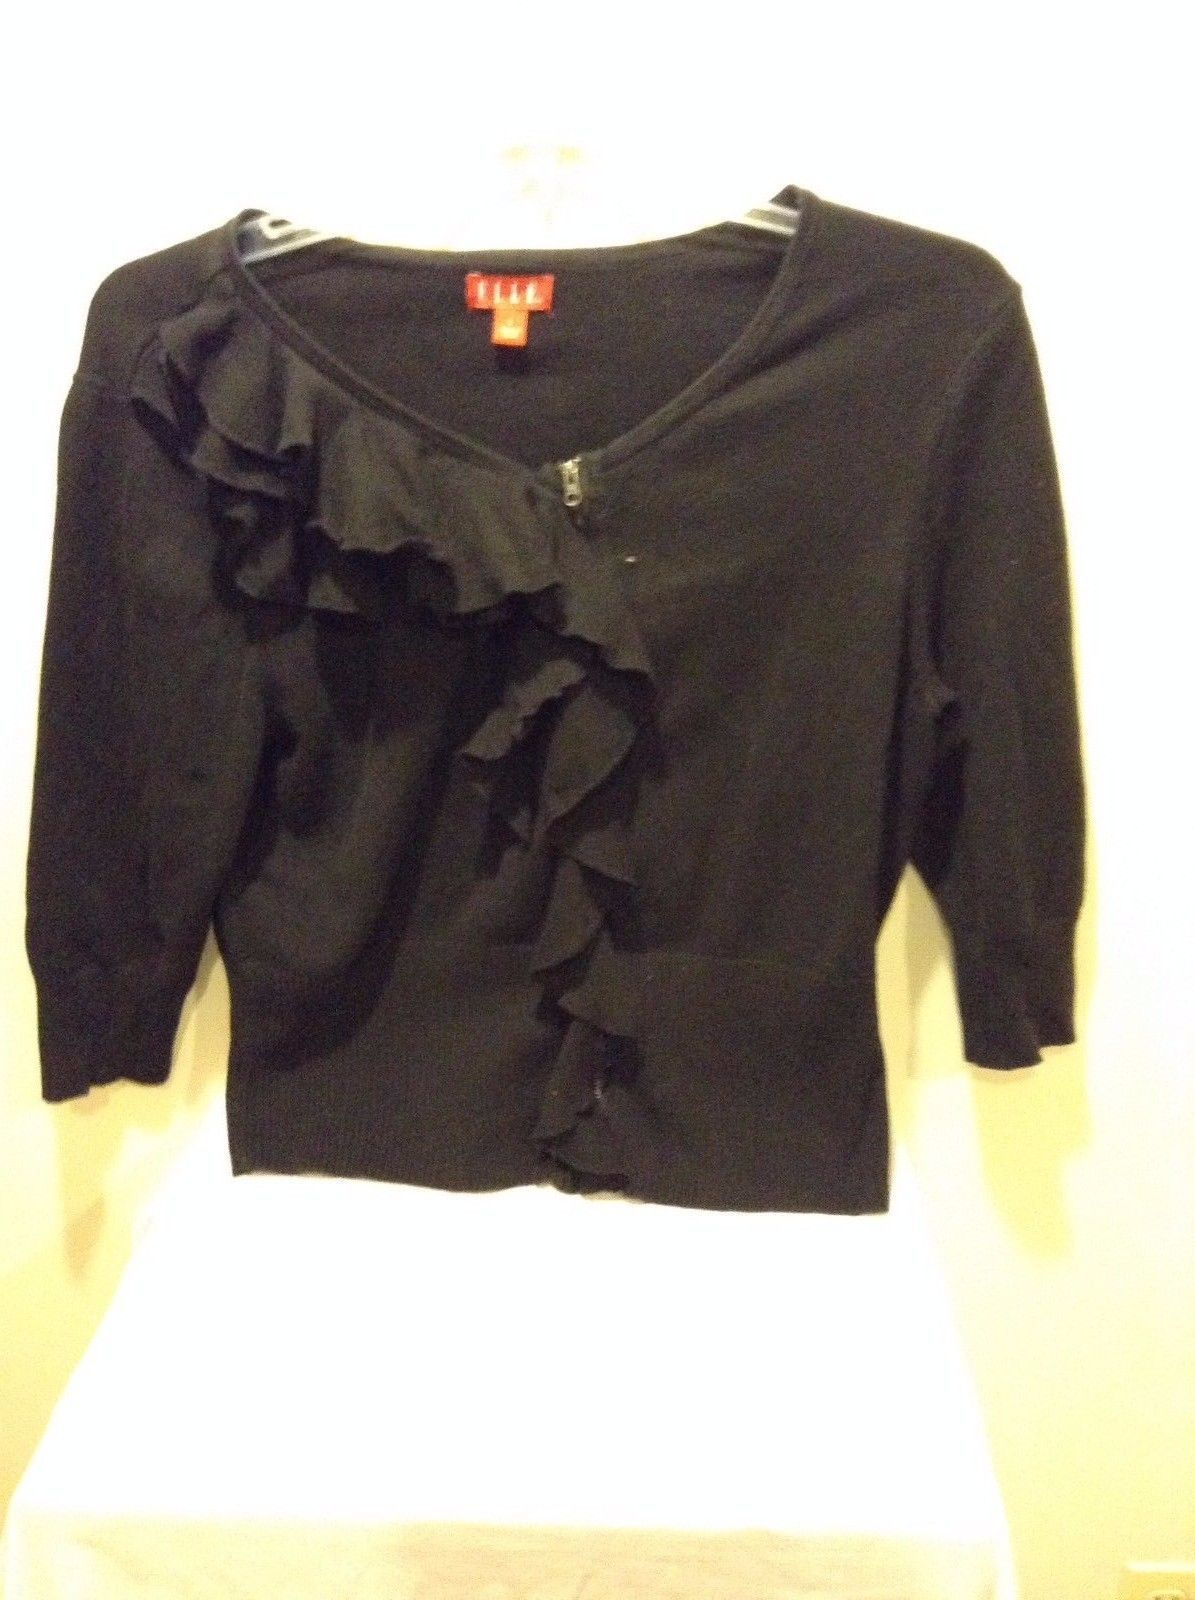 Elle Black Zip Up Blouse Sweater Large Cotton Ruffles